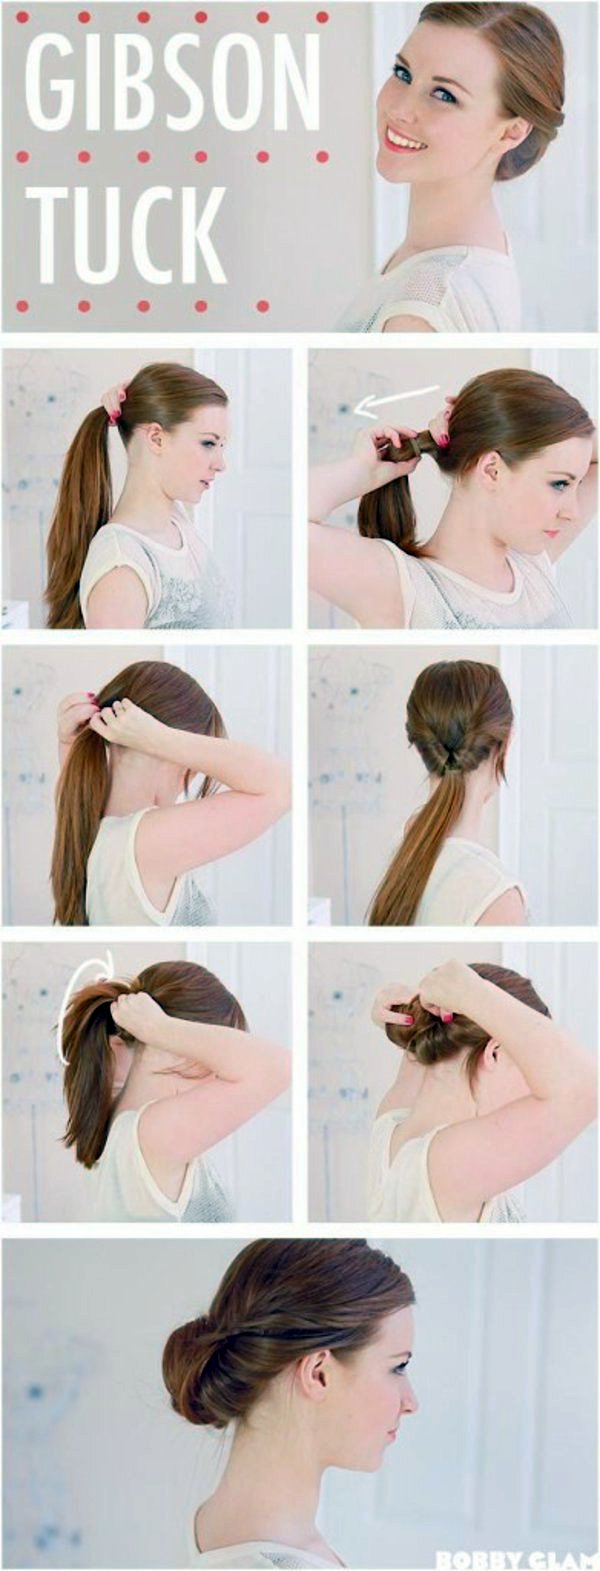 Astonishing Quick And Easy Going Diy Trendy Hairstyles Interior Design Ideas Hairstyles For Women Draintrainus